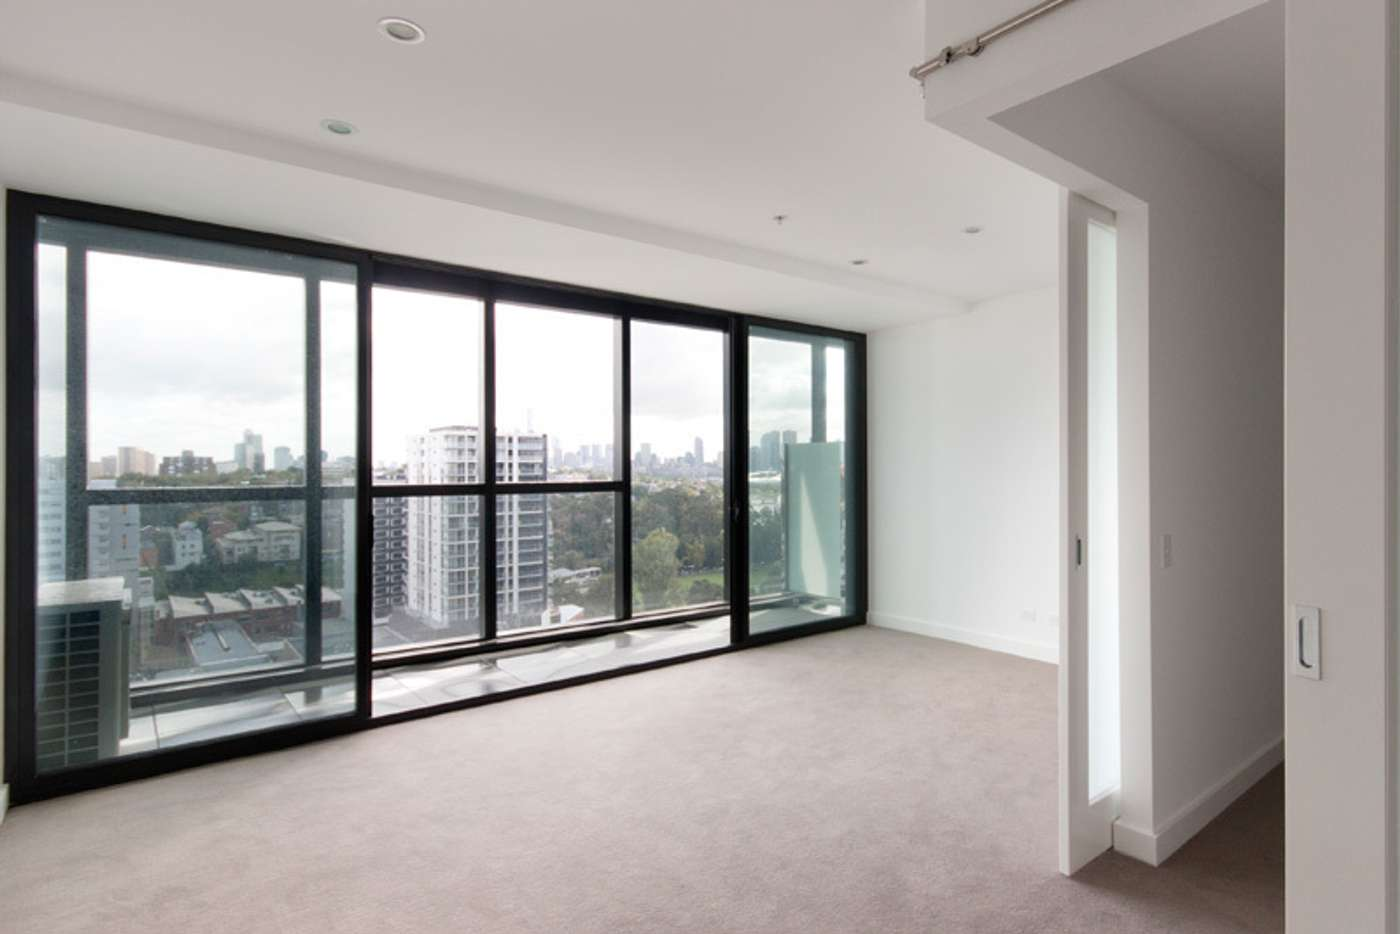 Main view of Homely apartment listing, 1414/35 Malcolm Street, South Yarra VIC 3141